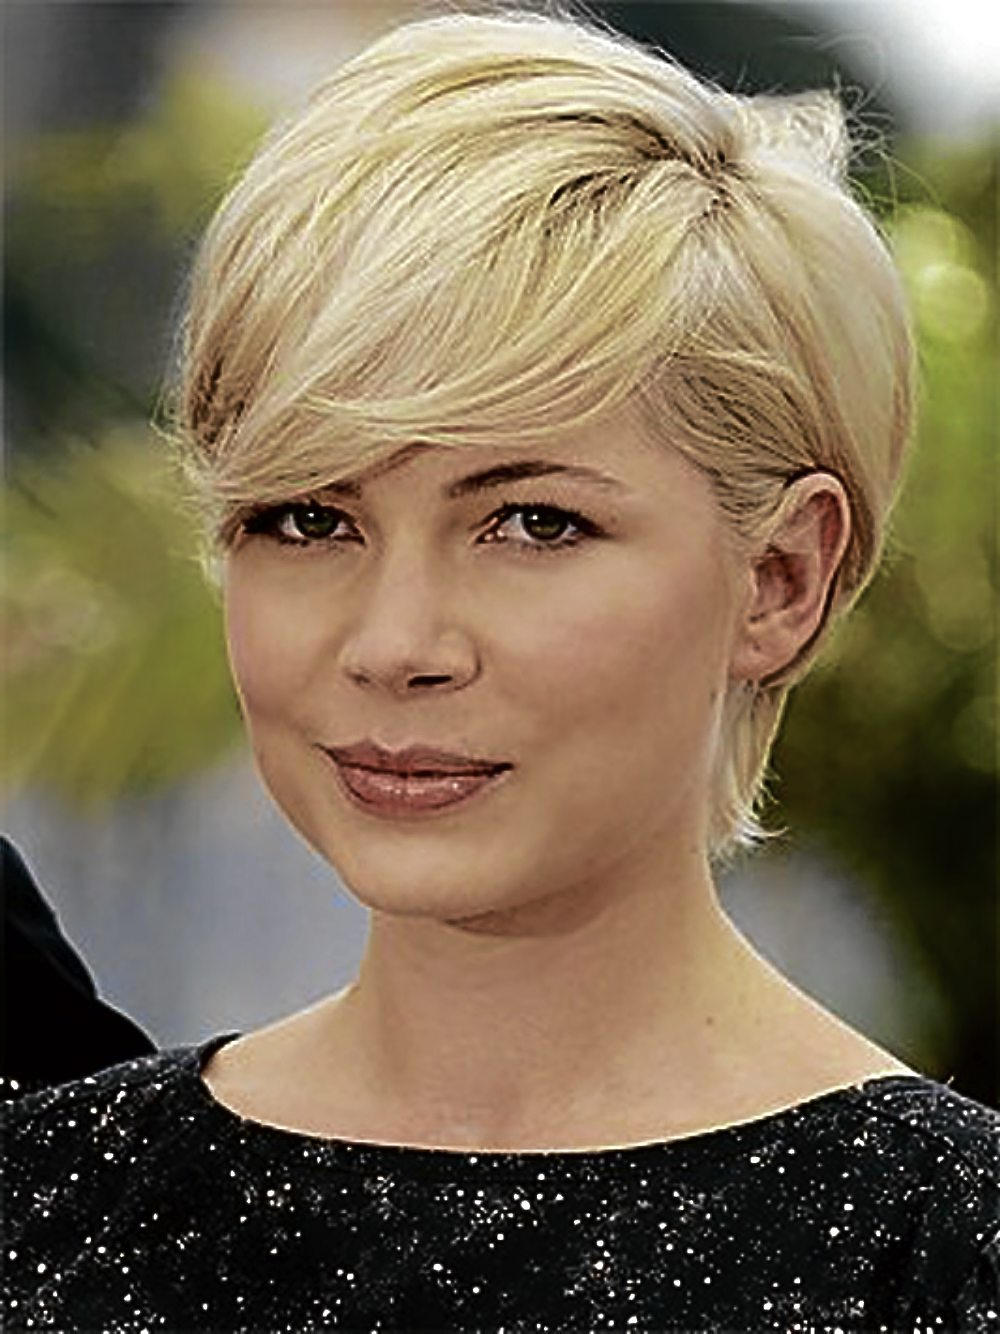 5 Things To Remember Before Getting That Pixie | Inquirer Lifestyle Within Short Hairstyles For Thick Hair Long Face (View 11 of 25)